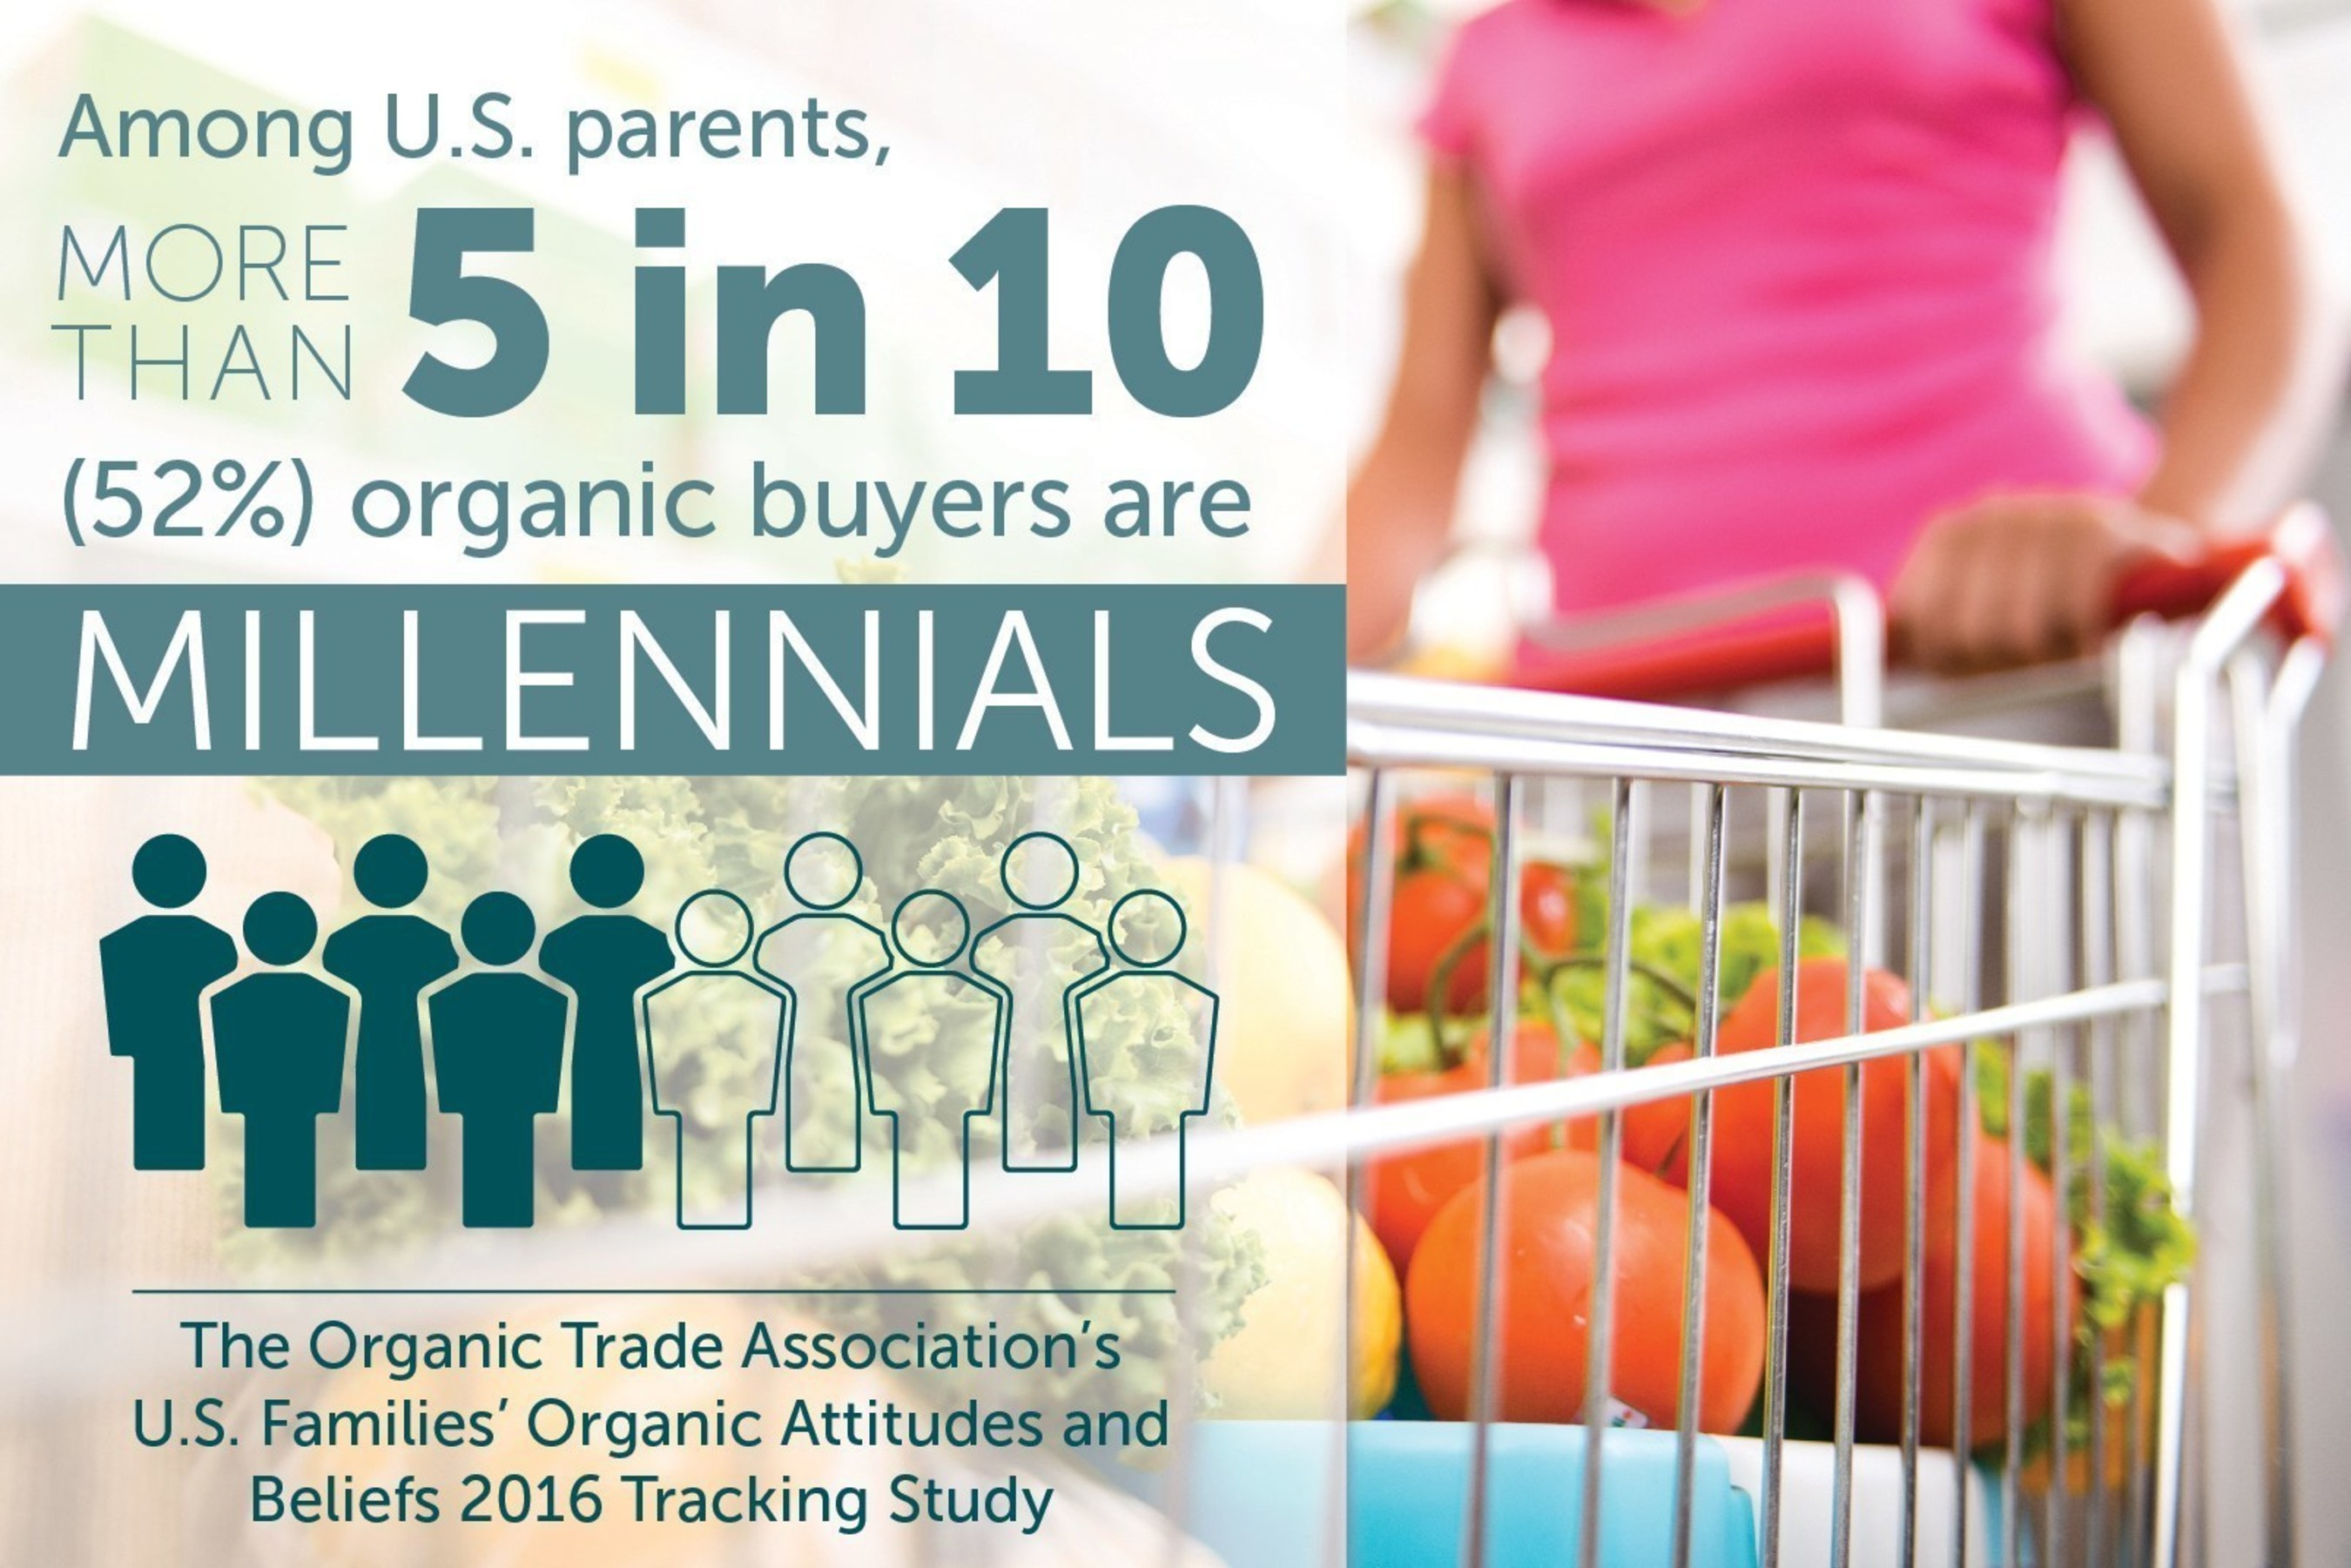 More than 50 percent of U.S. parents who buy organic products are Millennials.